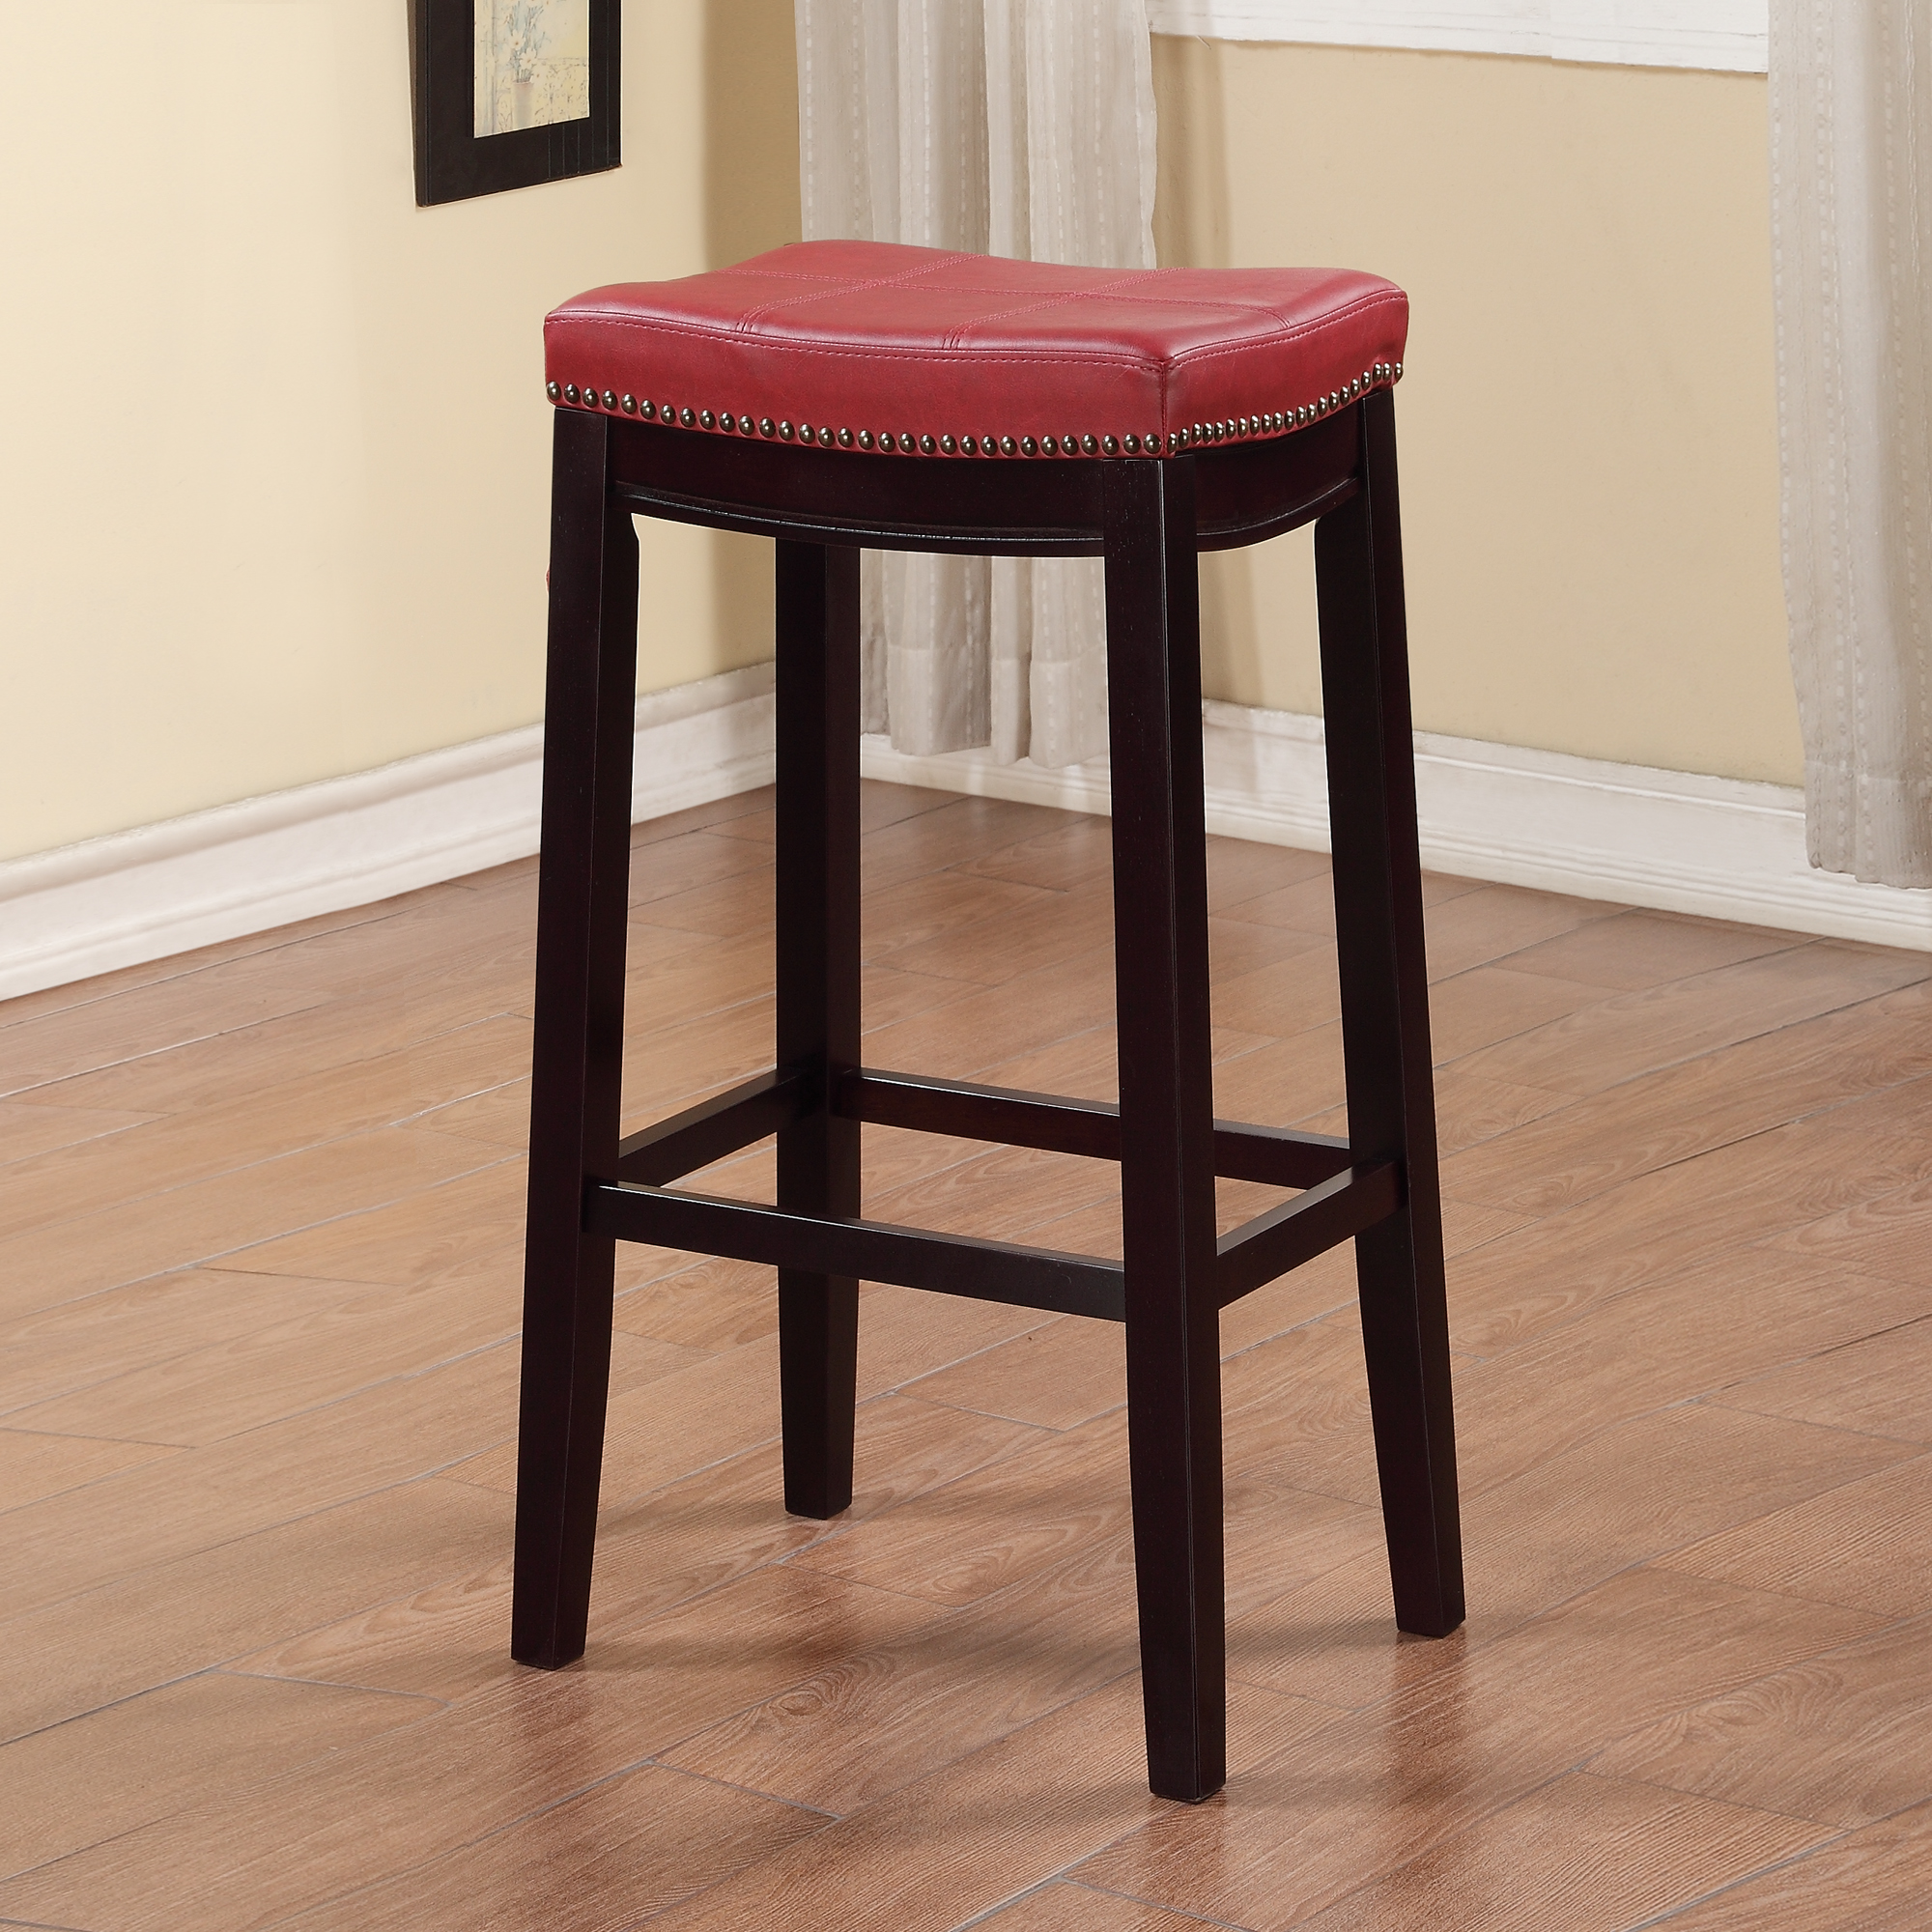 Linon Claridge Bar Stool Red 32 Inches Seat Height